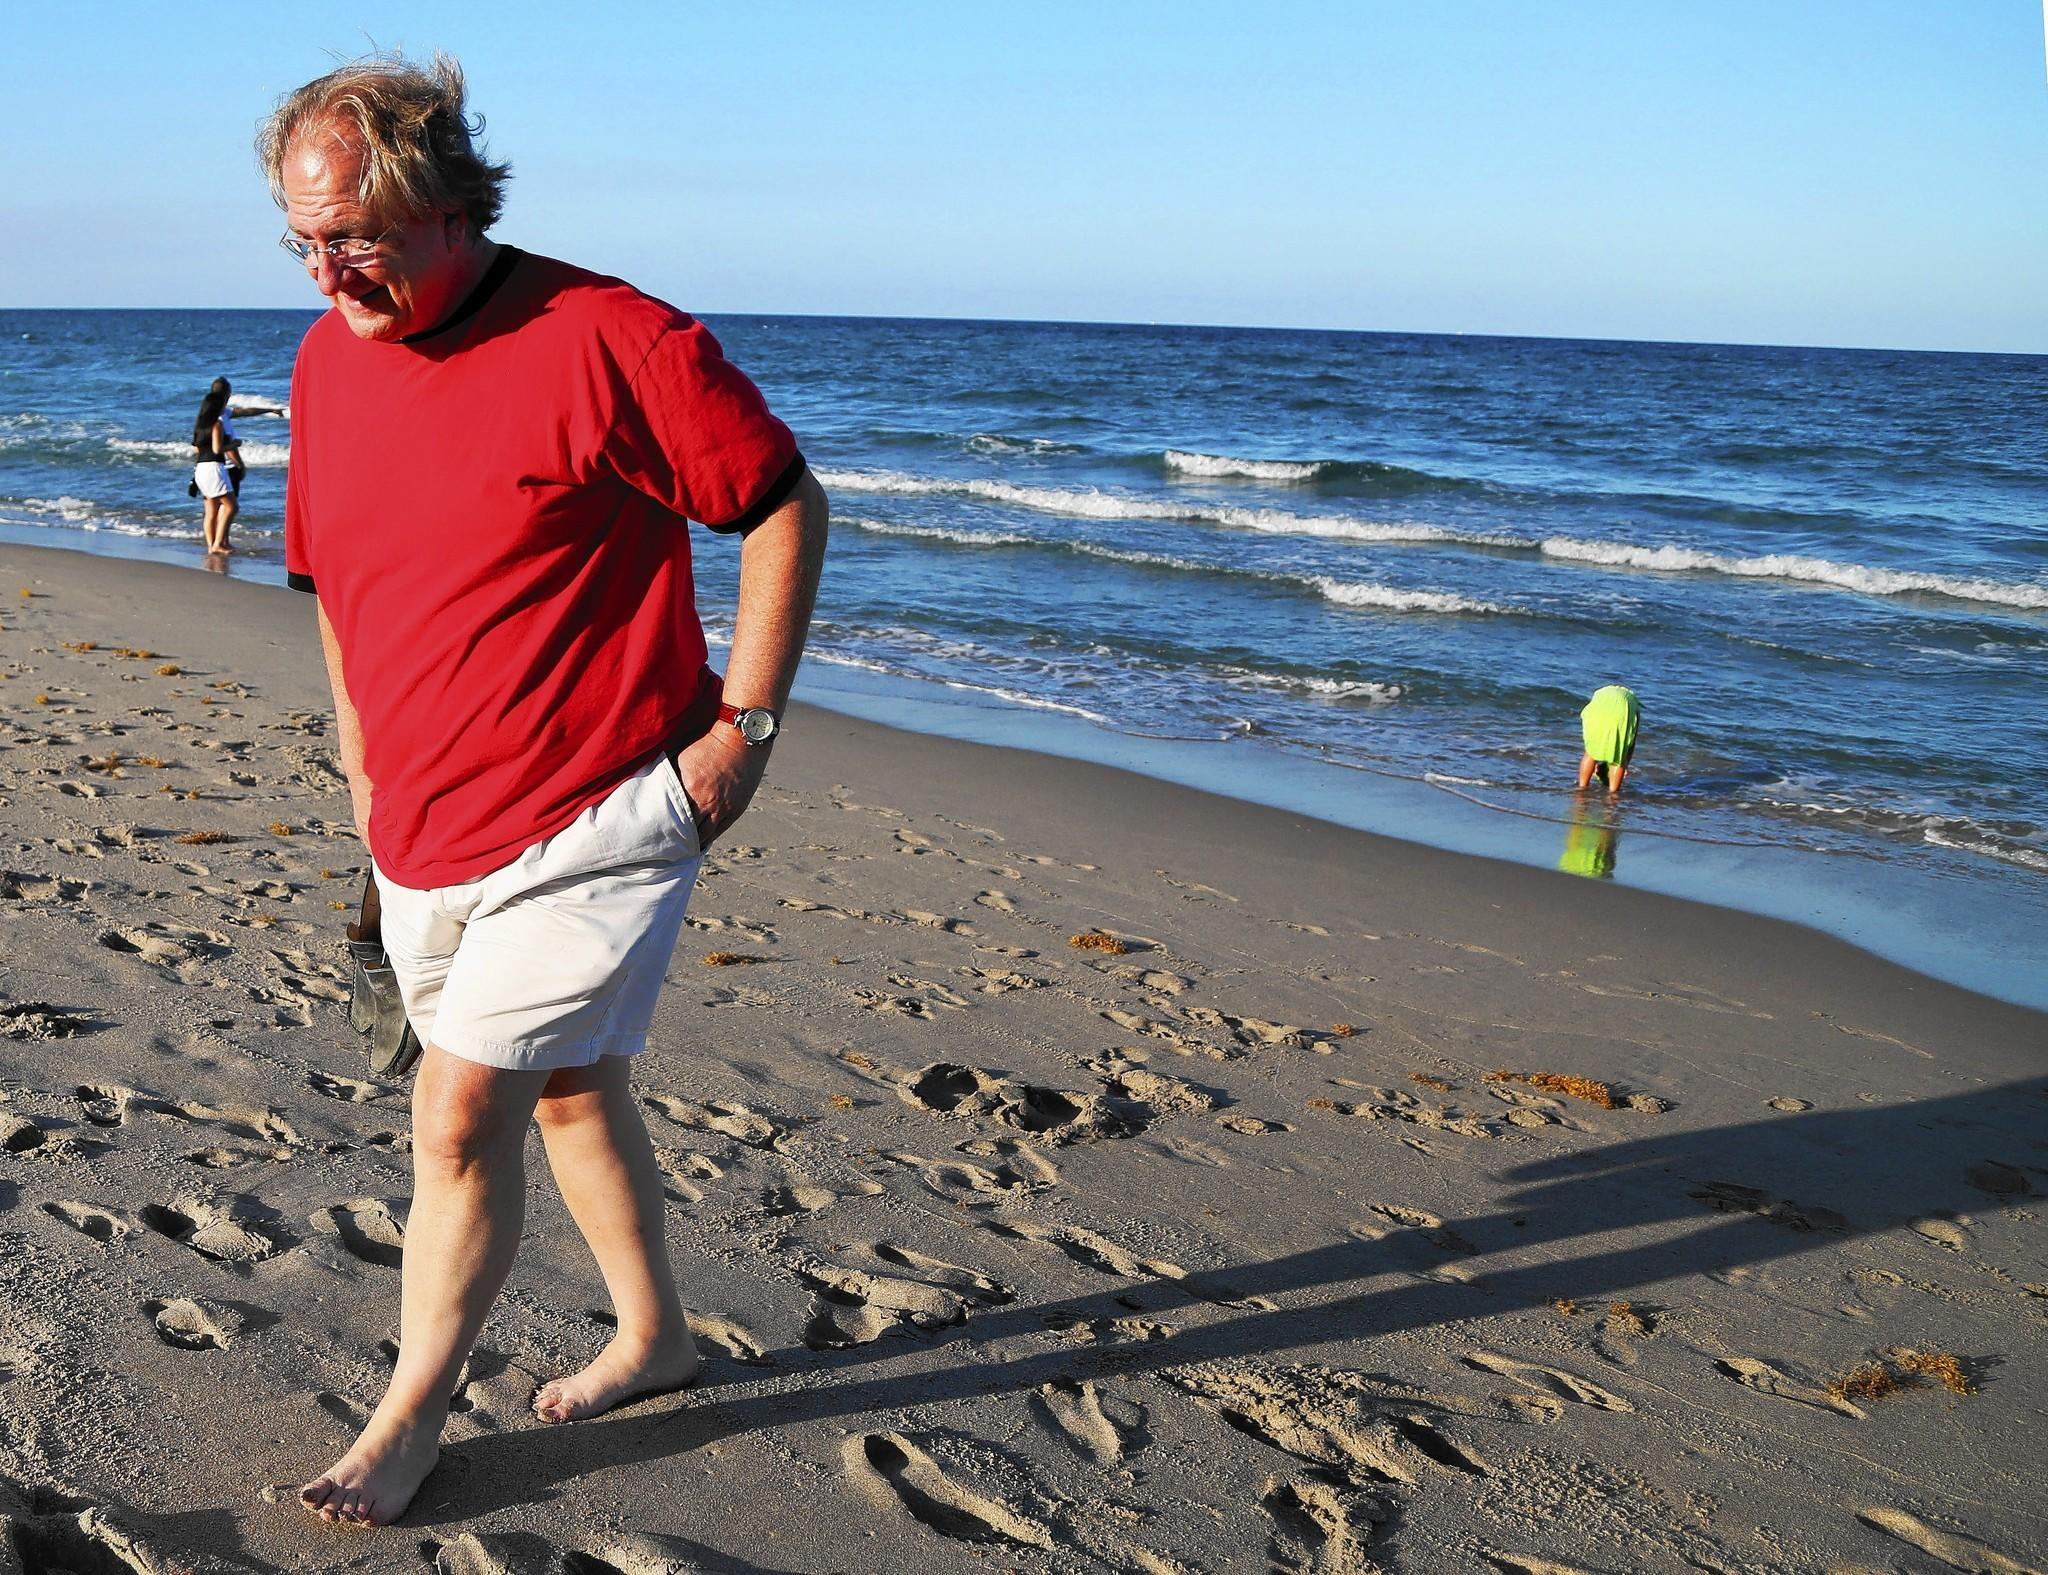 MacLellan, after Schiffer died of esophageal cancer in March, found it hard to let go. He was unsure what to do next. He found taking long walks on a beach near his home helped.